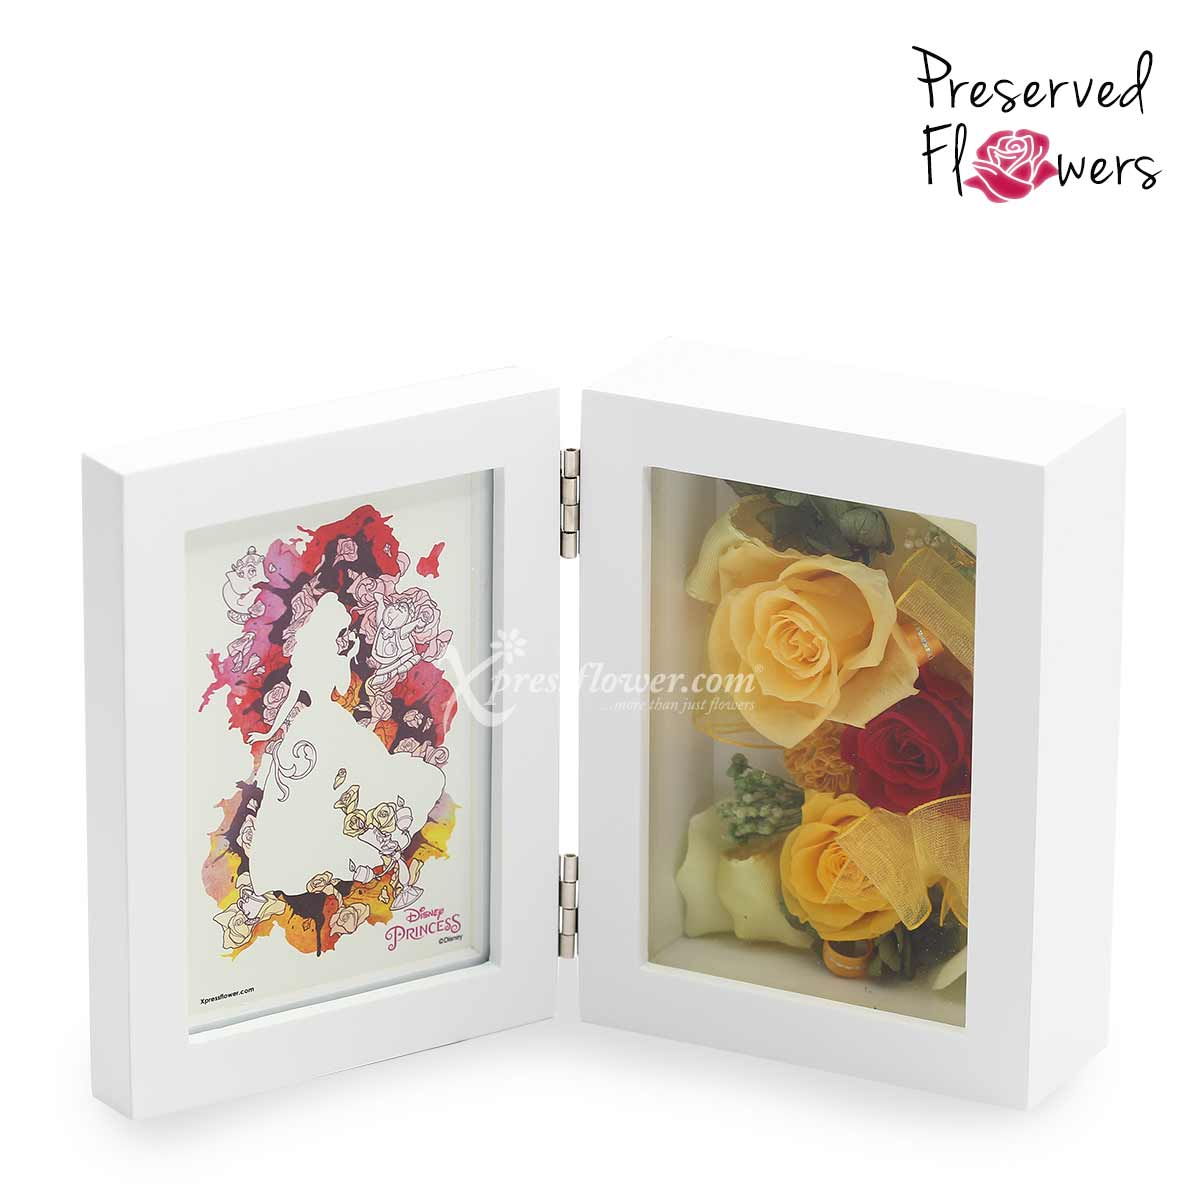 DSPR1902 Enchanted Beauty Preserved Flowers